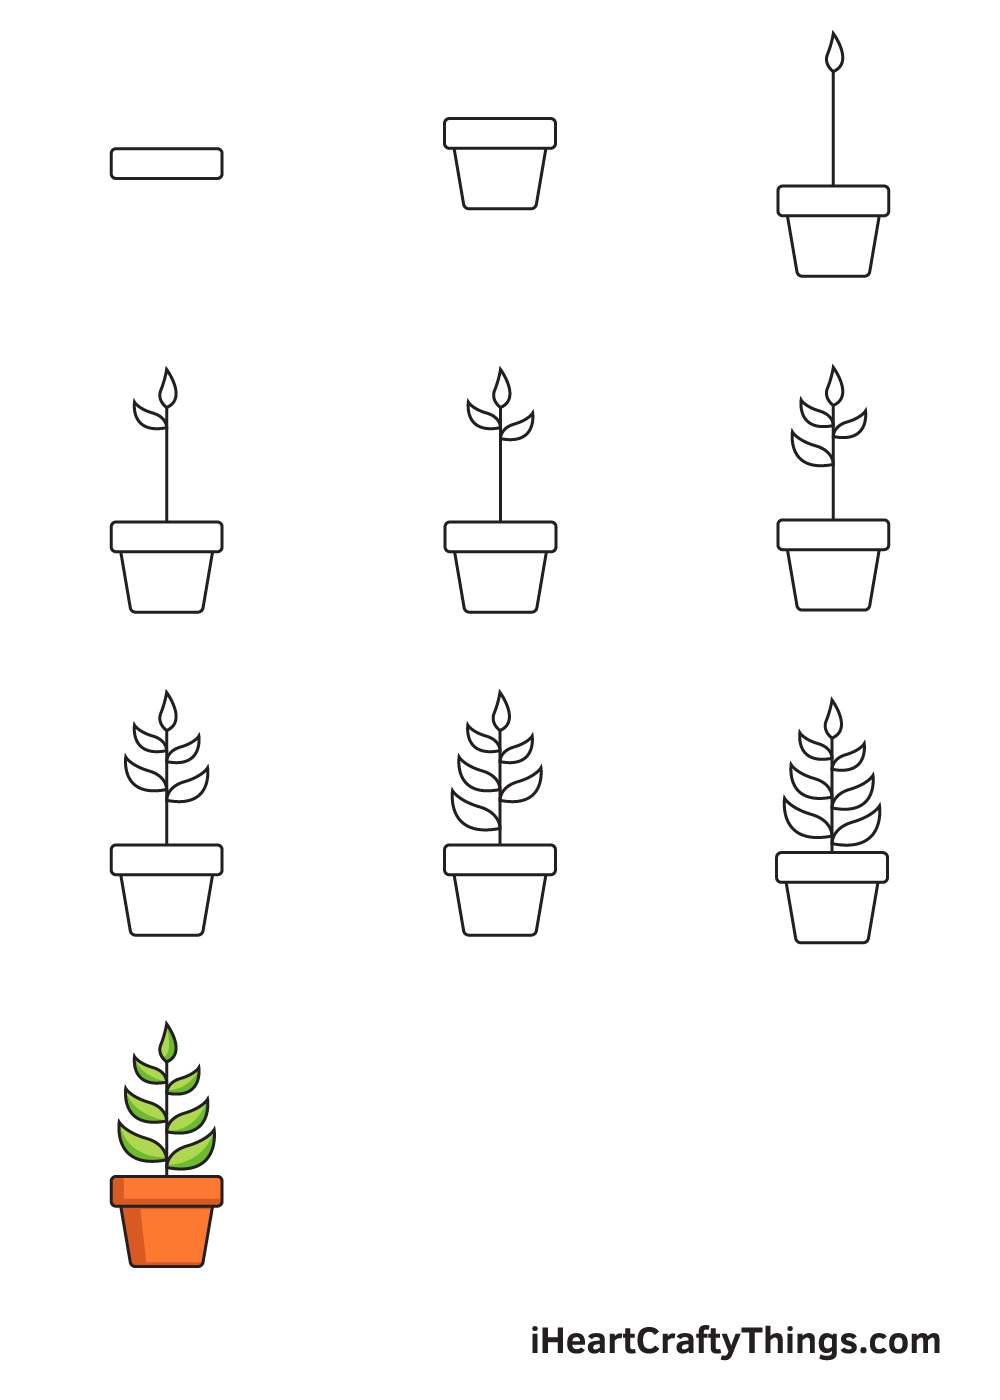 Drawing Plant in 9 Easy Steps